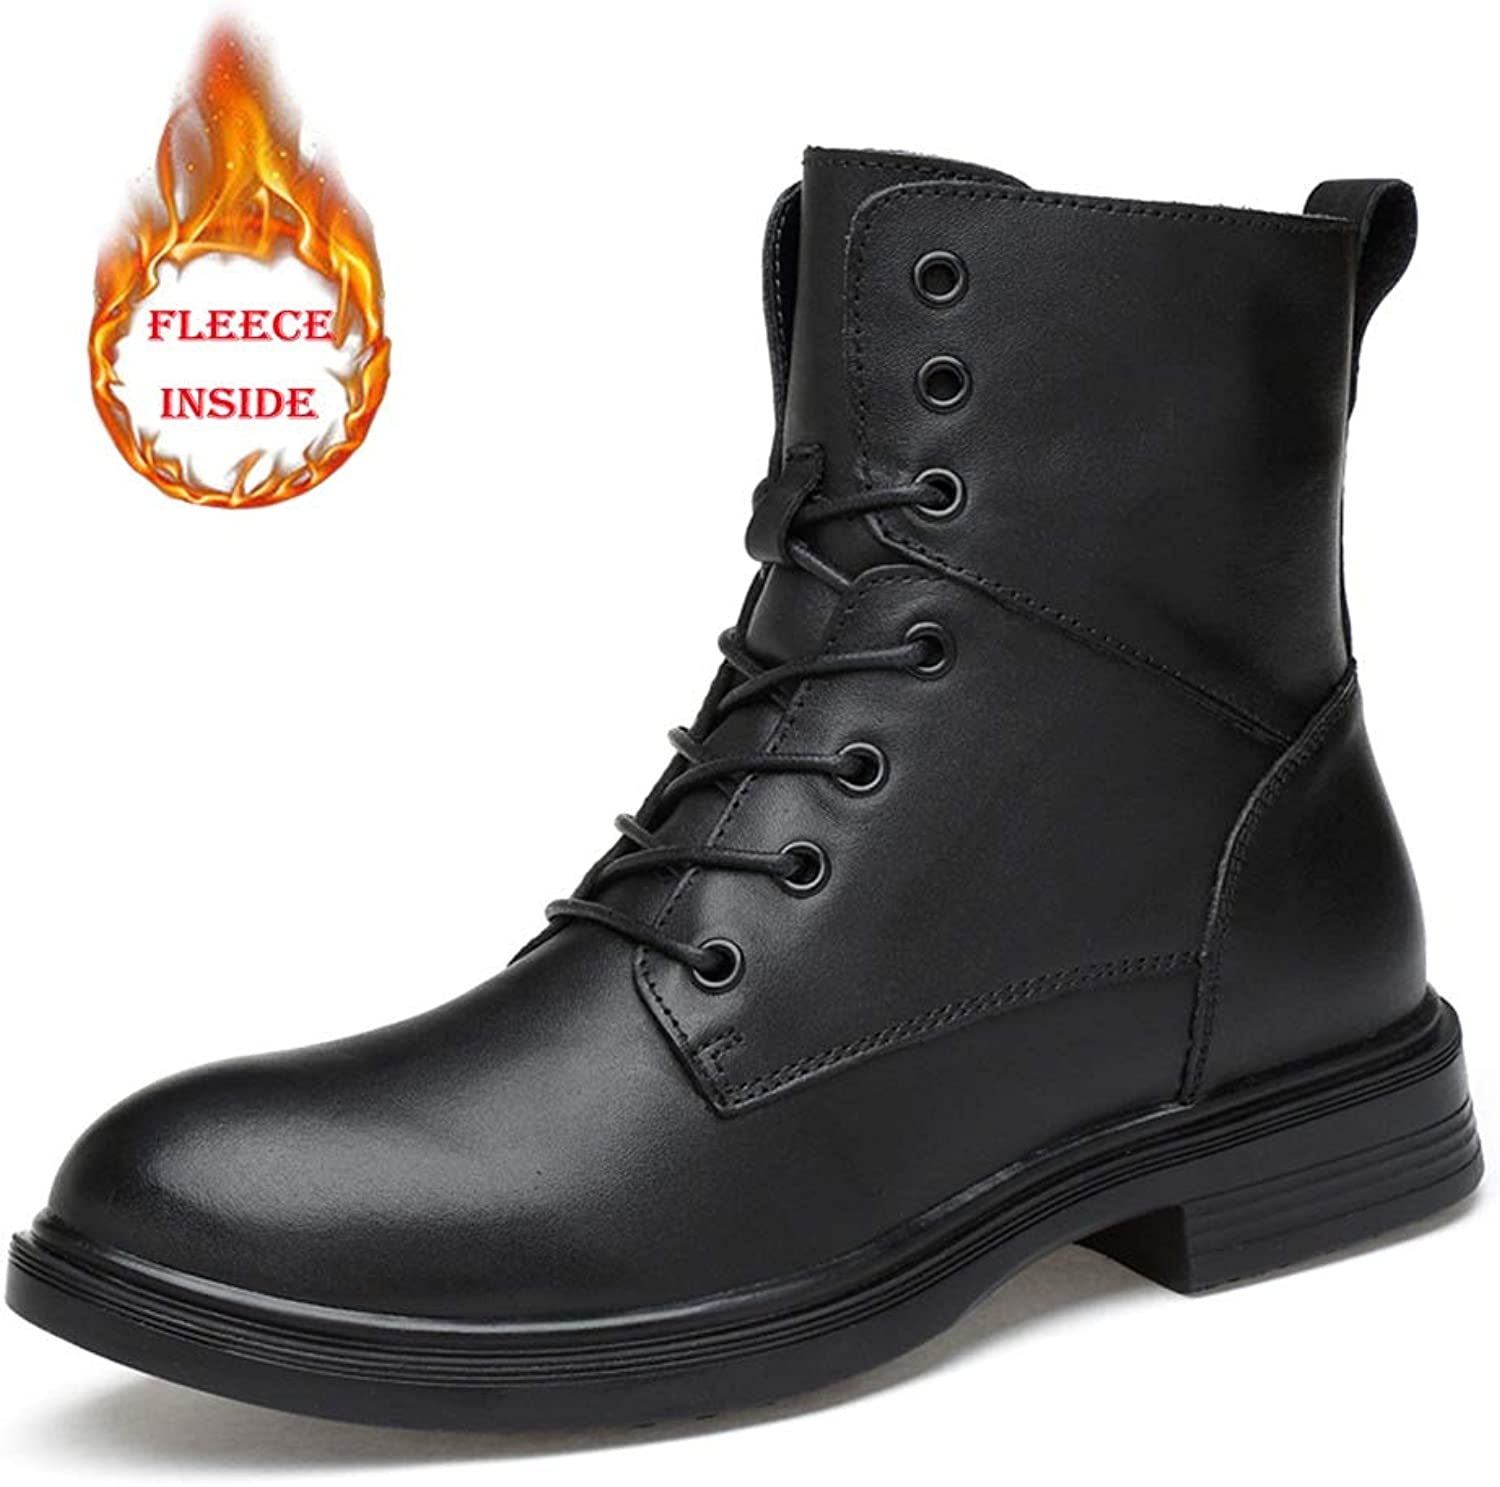 Men's Mid-Calf Boots Casual and Simple Classic High-top Anti-Skid Waterproof Martin Boots